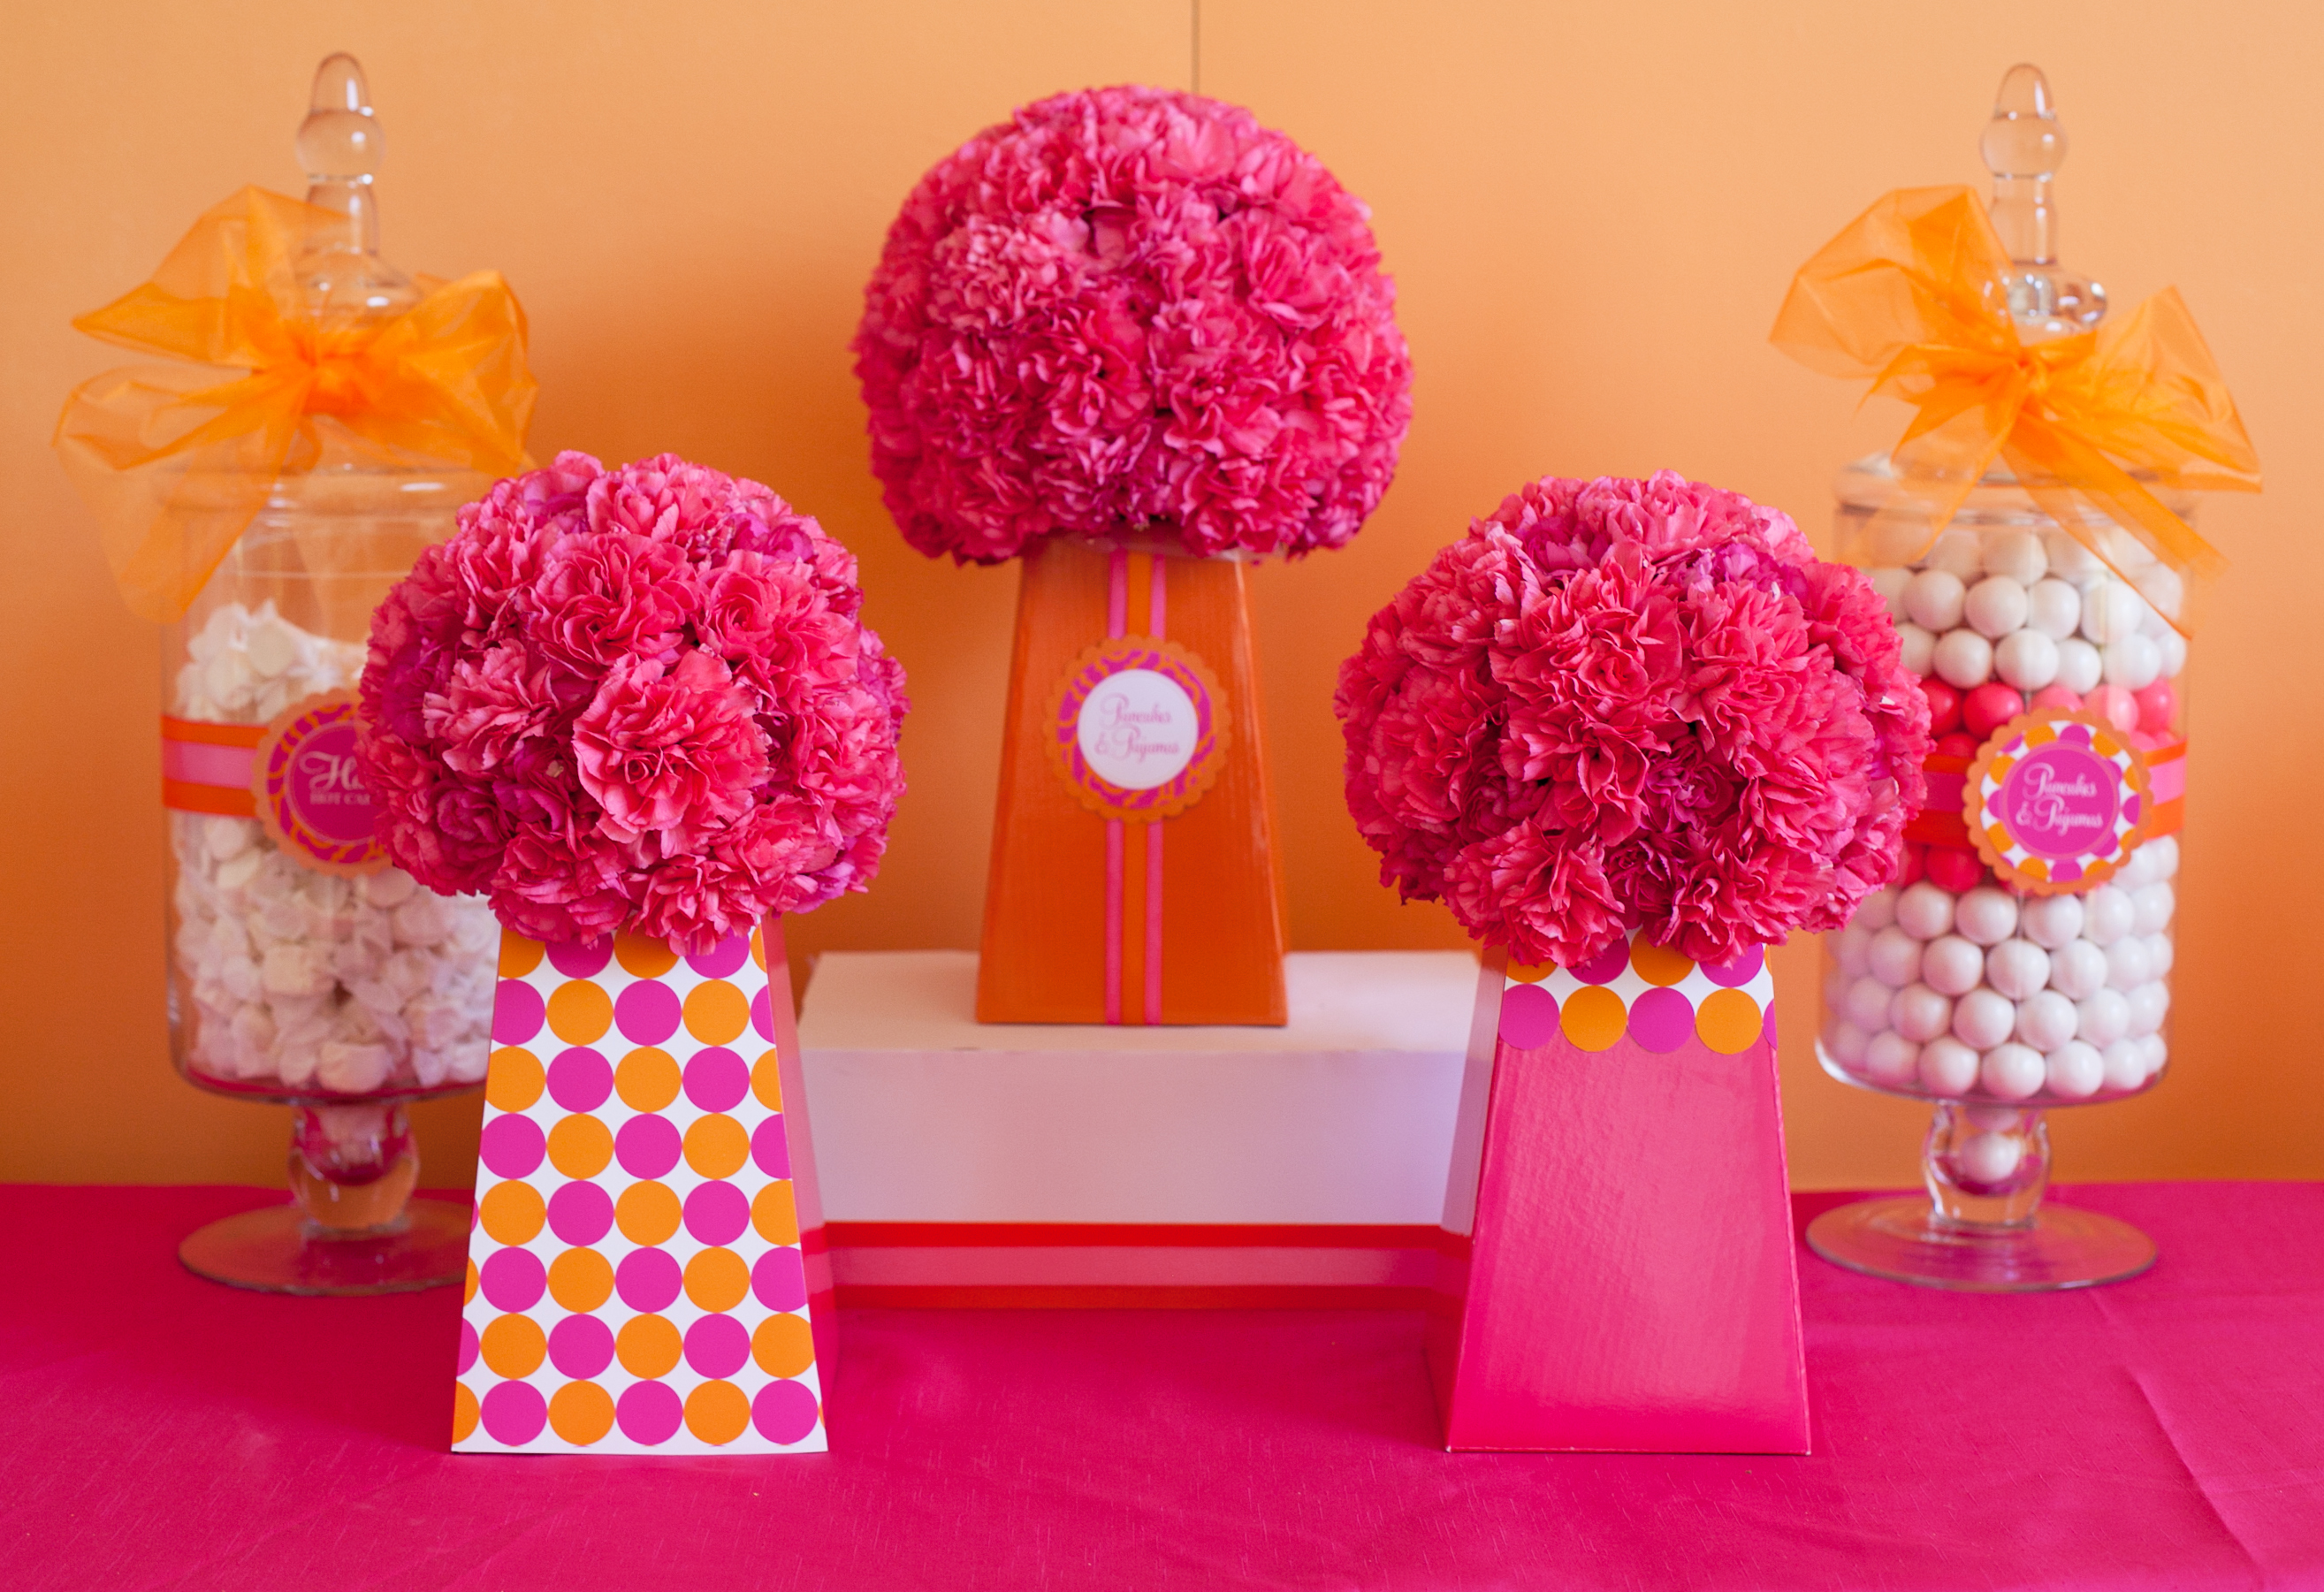 Diy designing centerpieces to match your party